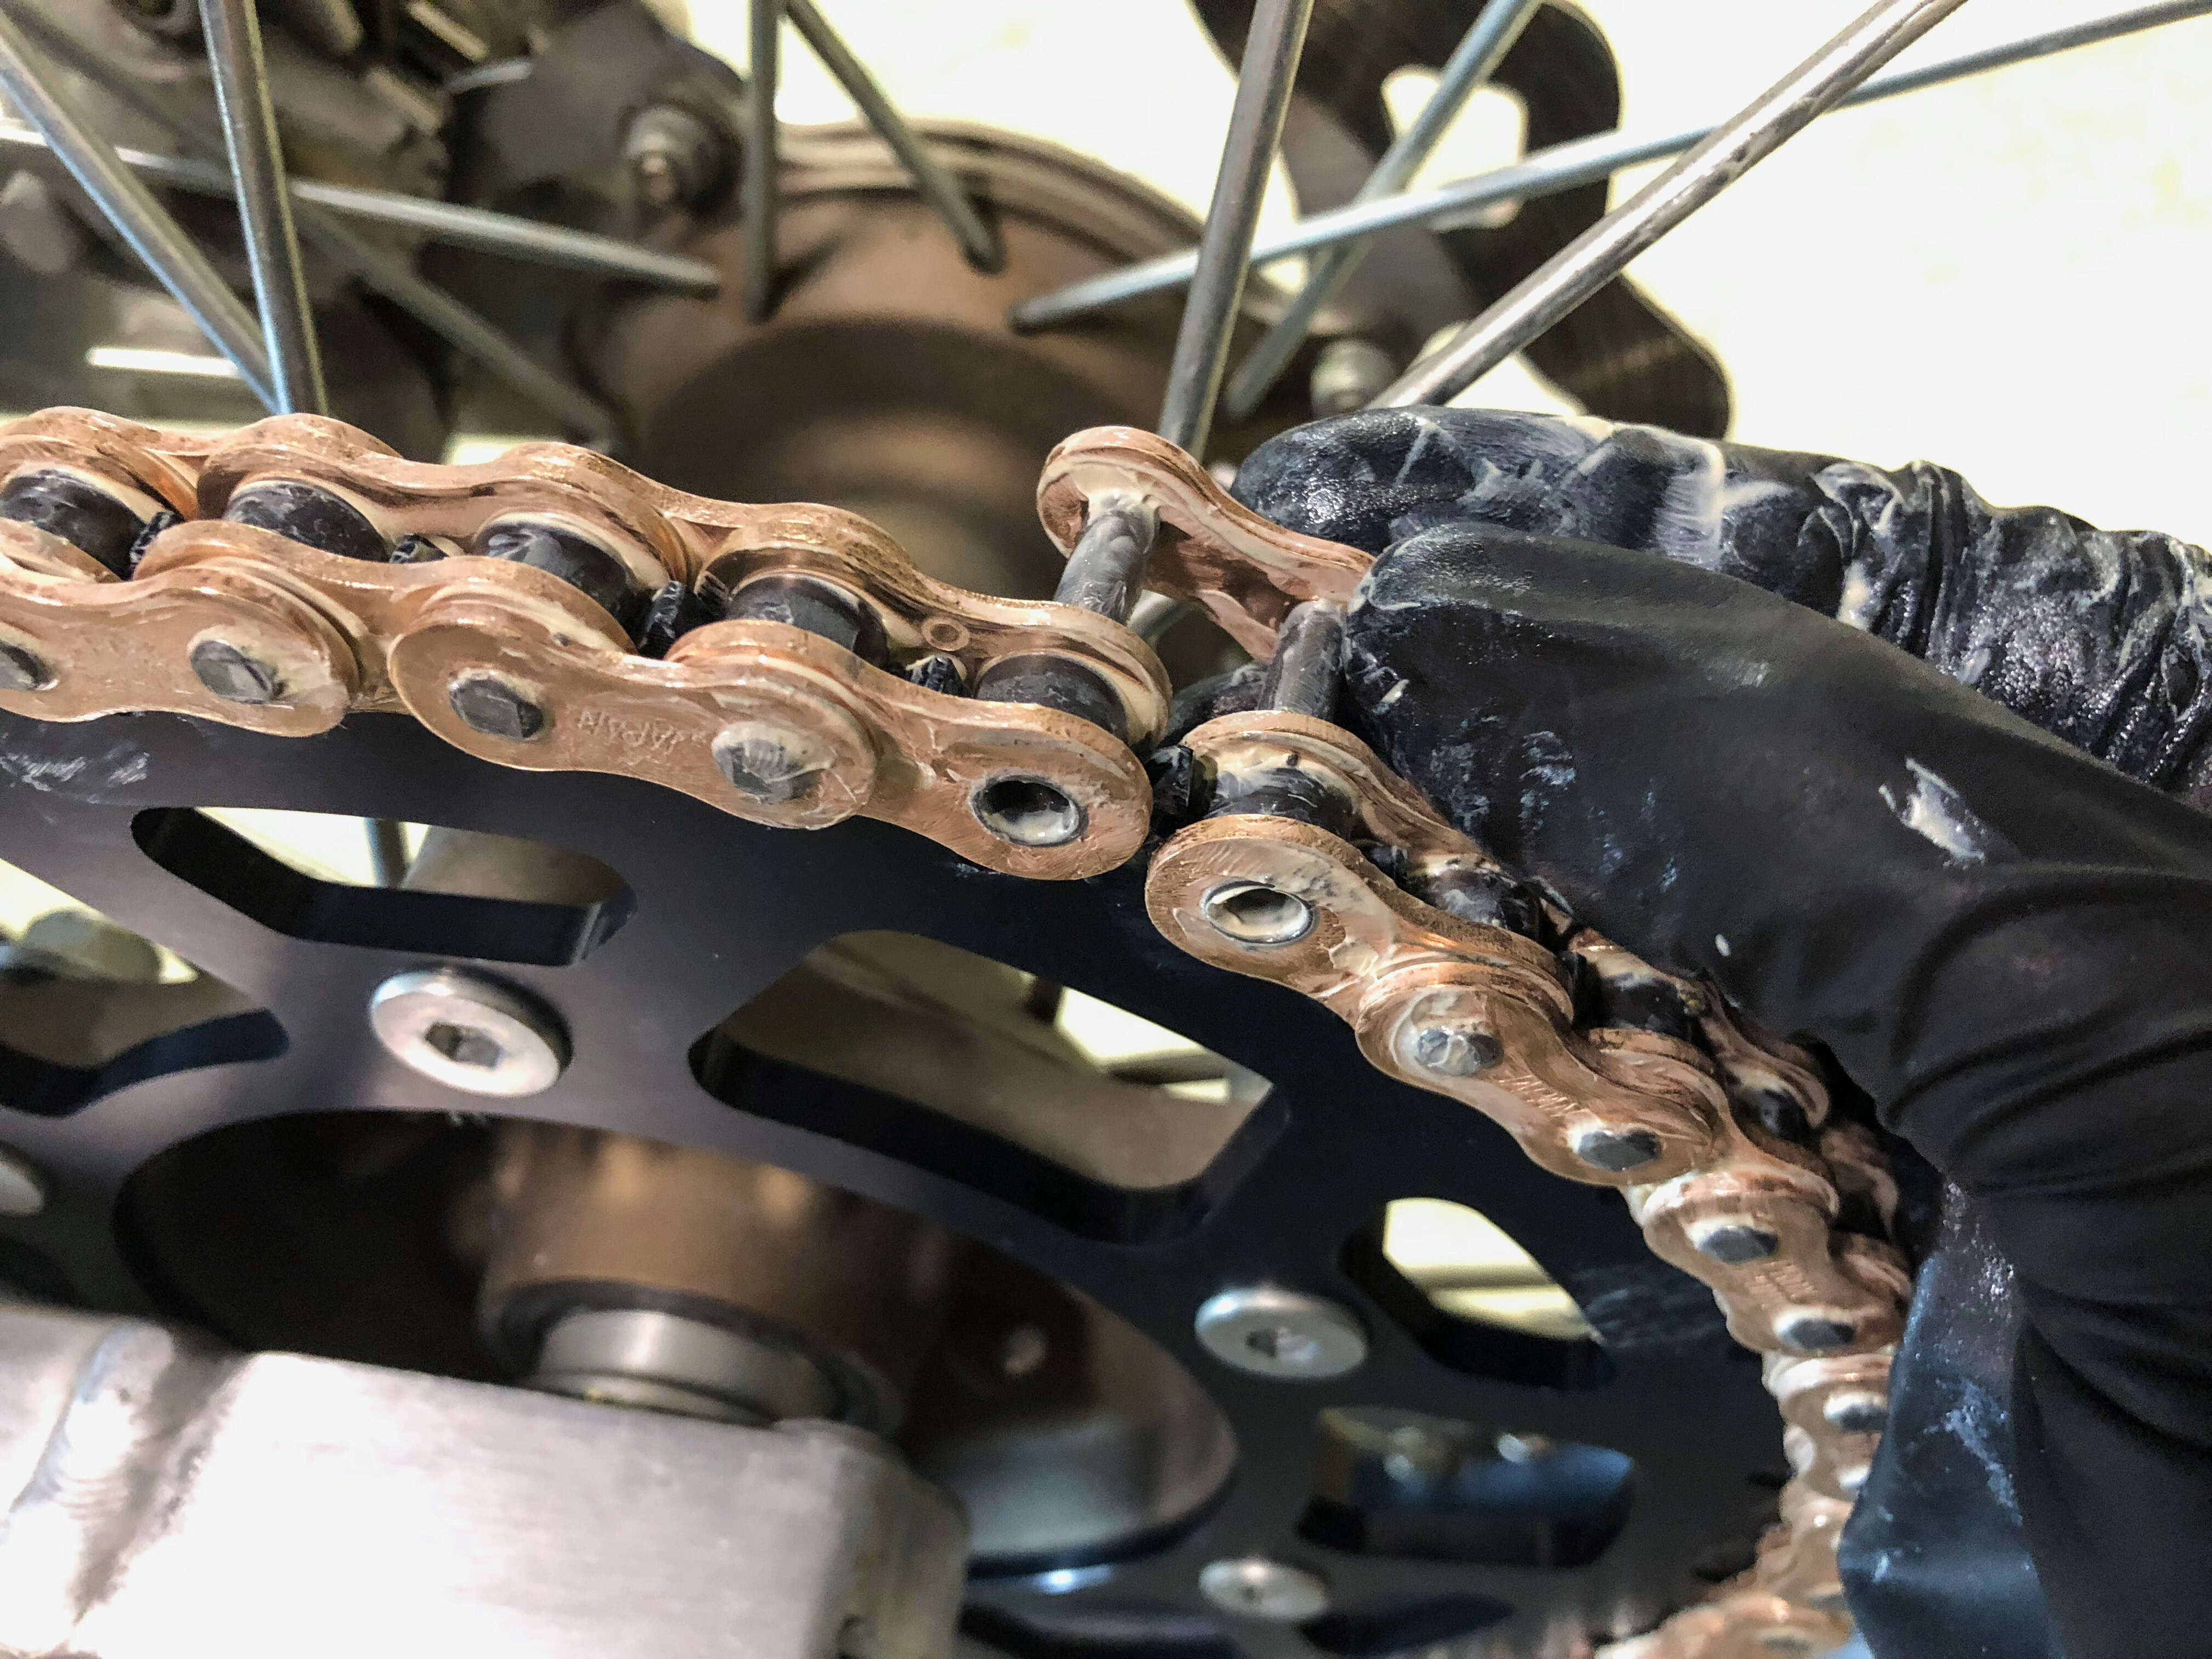 Installing a New Chain on Your Dirt Bike or ATV